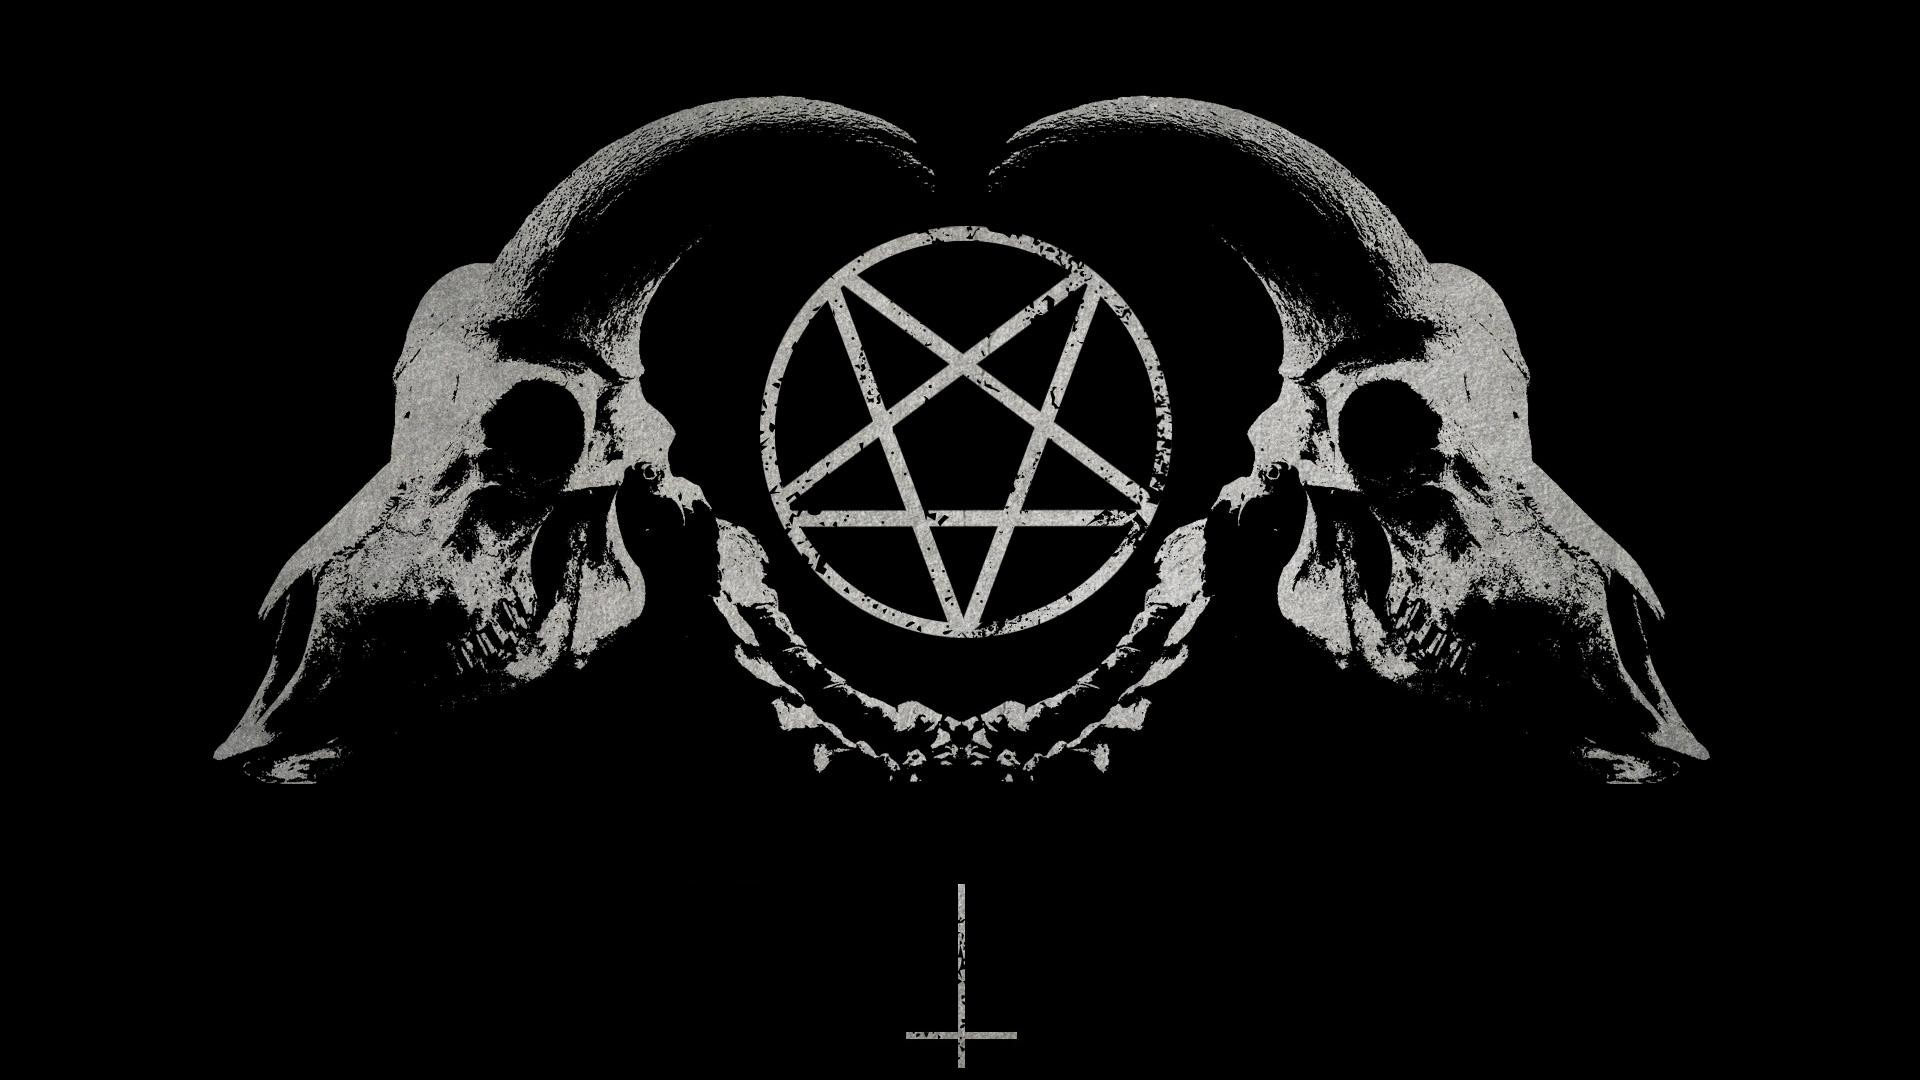 Satanic wallpaper download free amazing hd wallpapers - Devil skull wallpaper ...